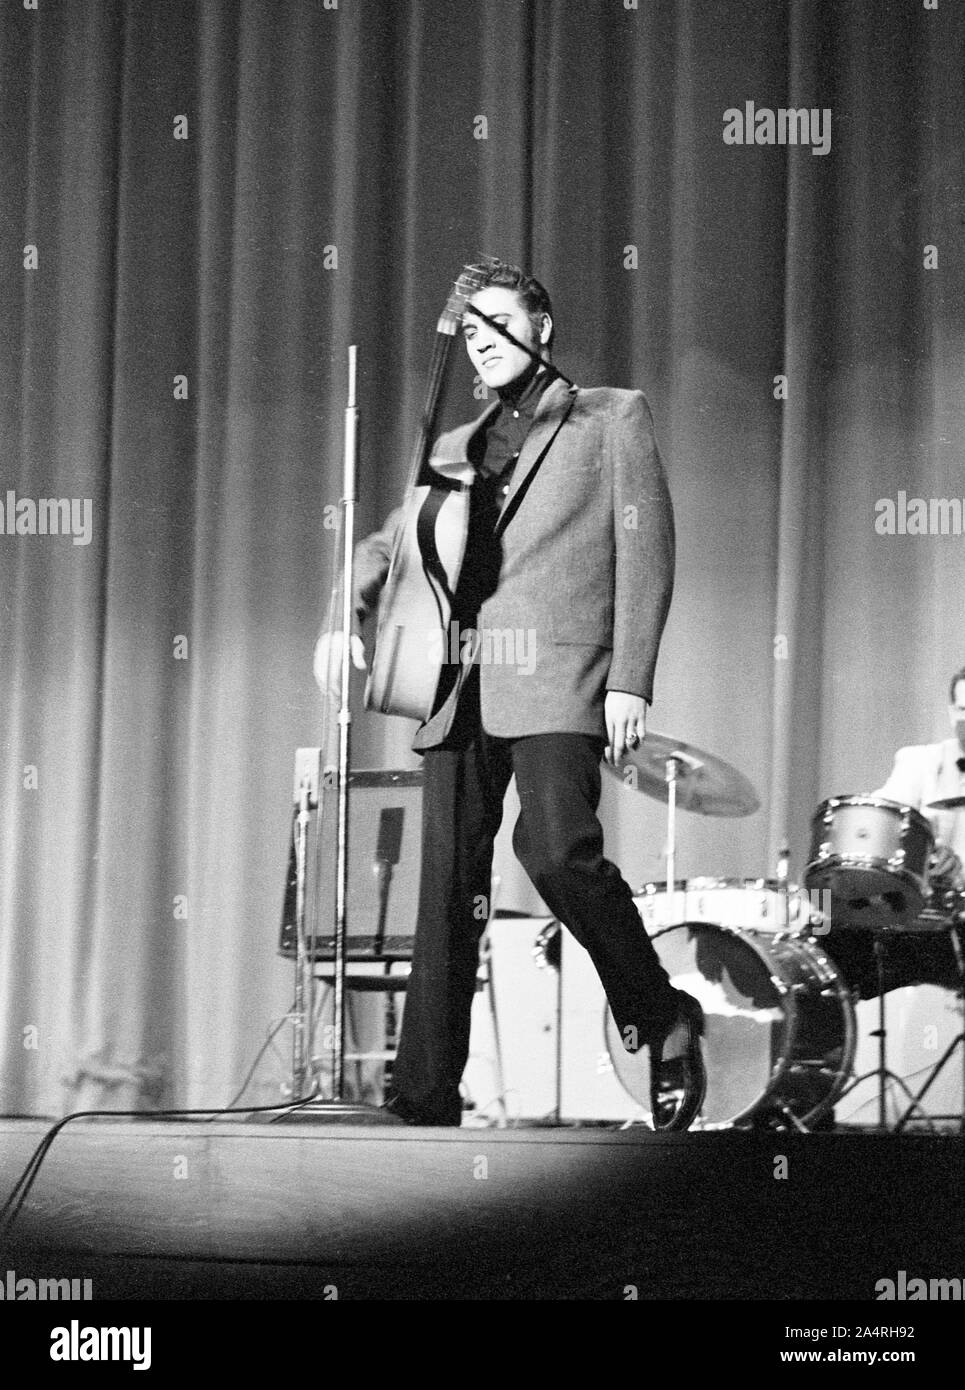 Elvis Presley performing on May 26, 1956. The performance took place at the Veteran's Memorial Auditorium, Columbus, Ohio. Stock Photo